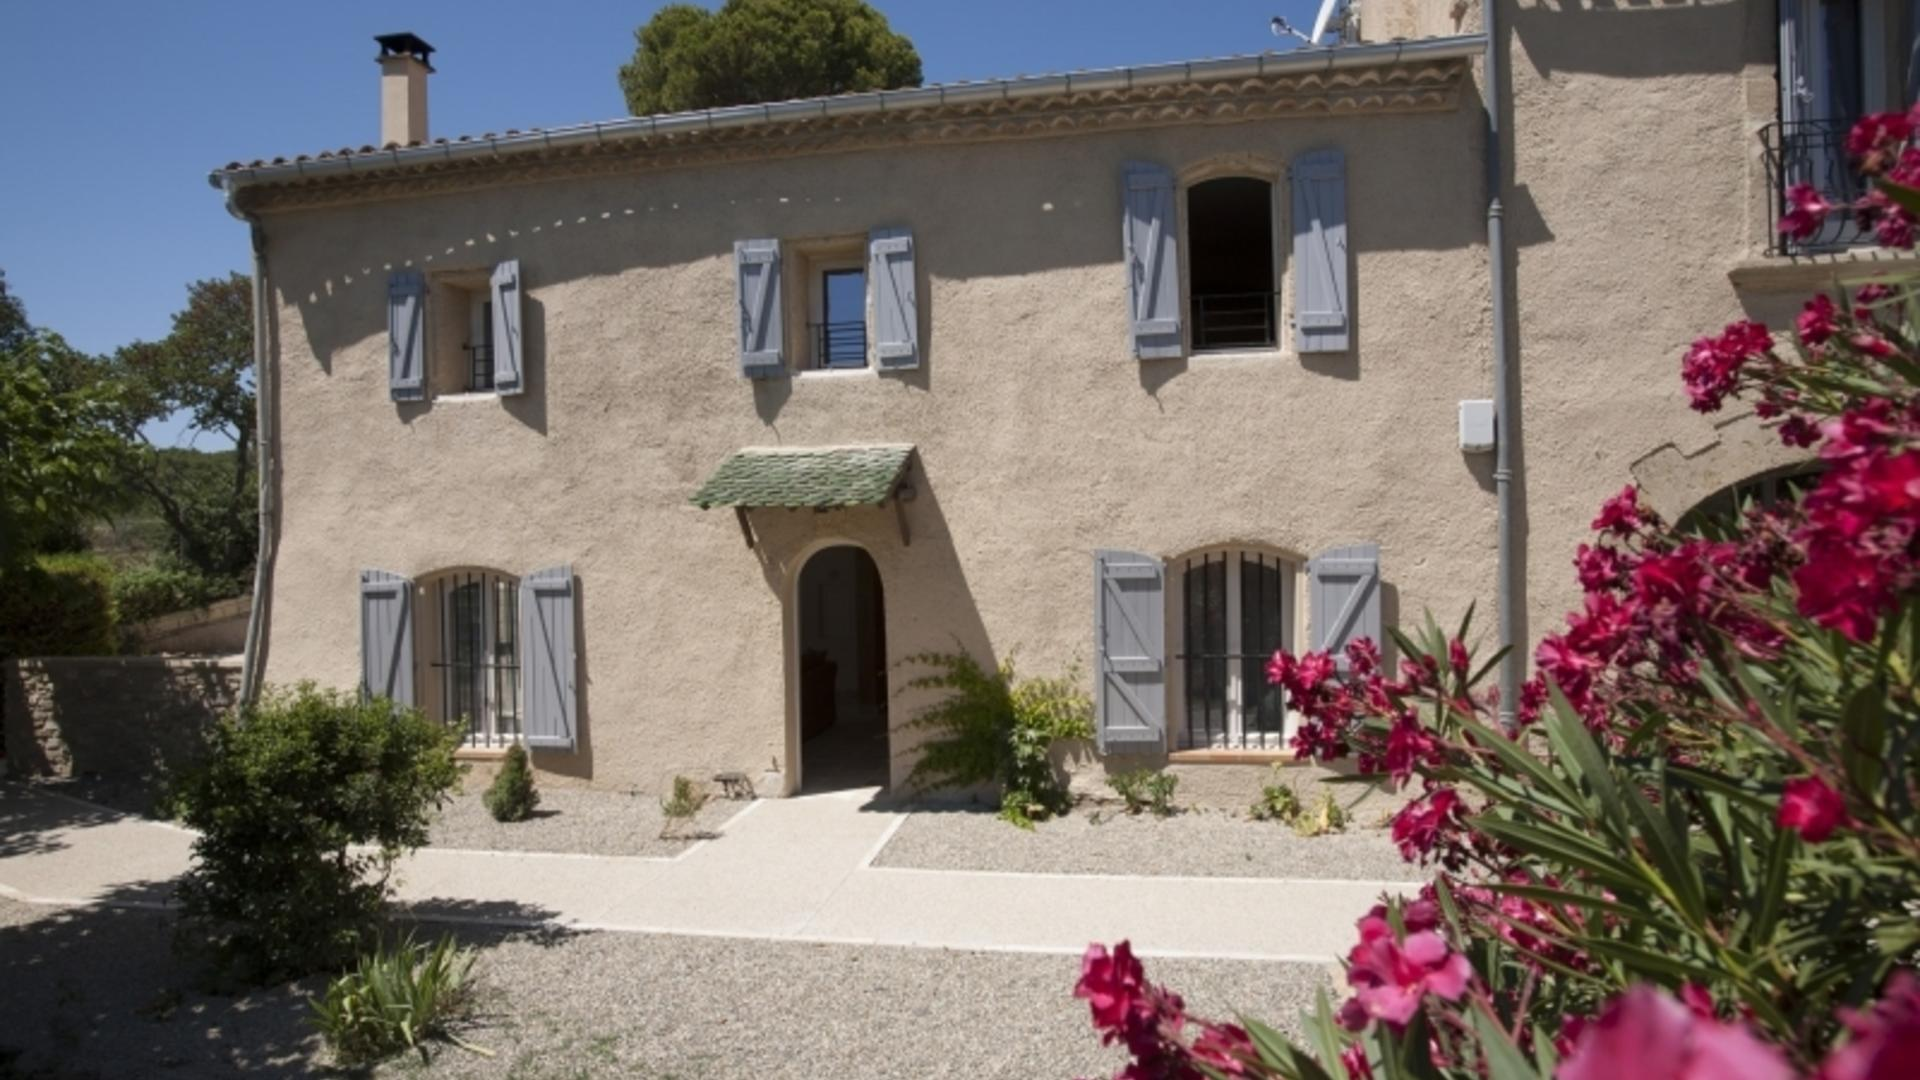 2 Bedroom Gite in Languedoc-Roussillon, France